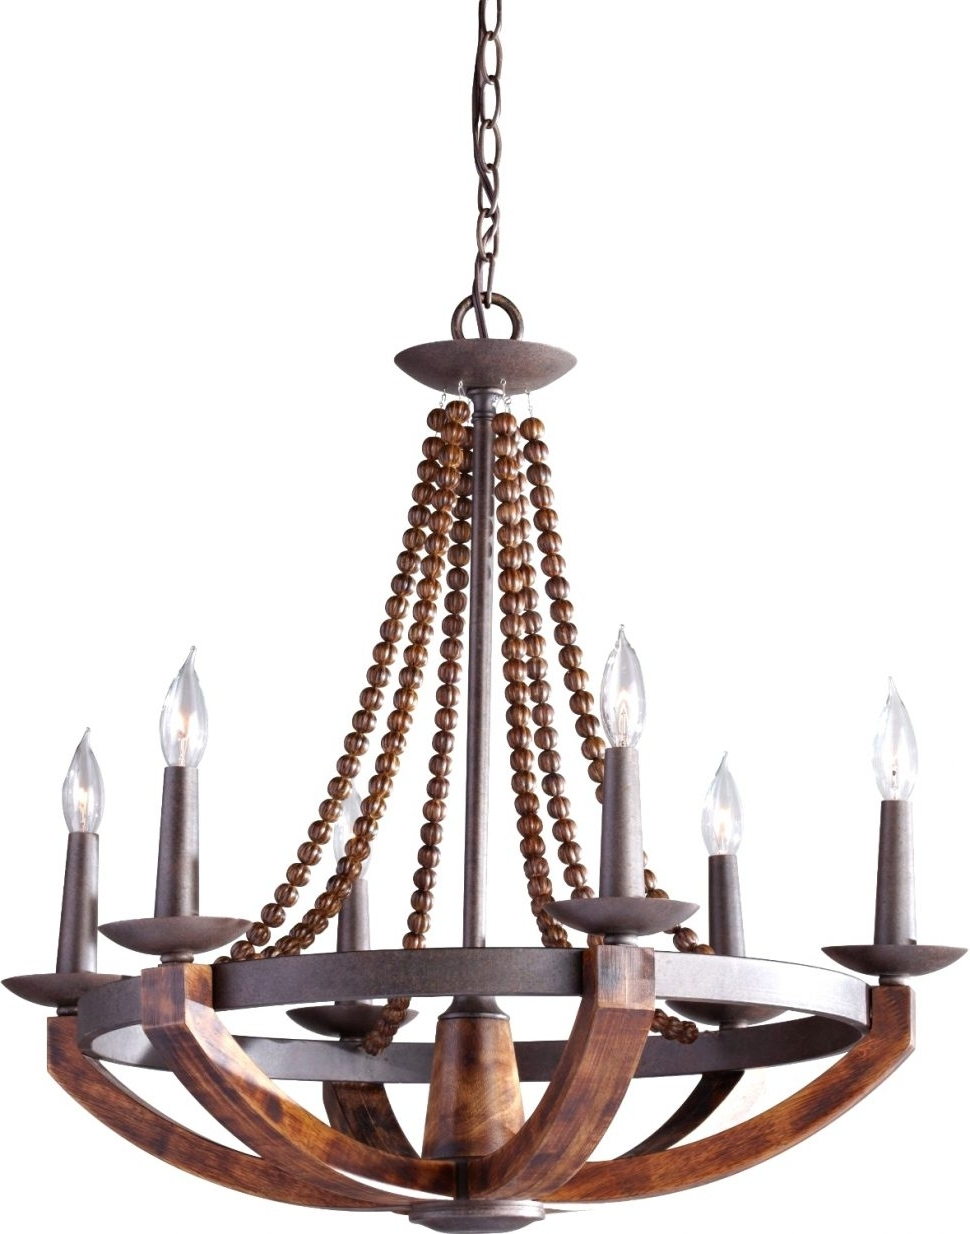 Newest Light : Large Rustic Chandelier Lighting With Best Wood And Metal Within Metal Ball Candle Chandeliers (View 5 of 20)